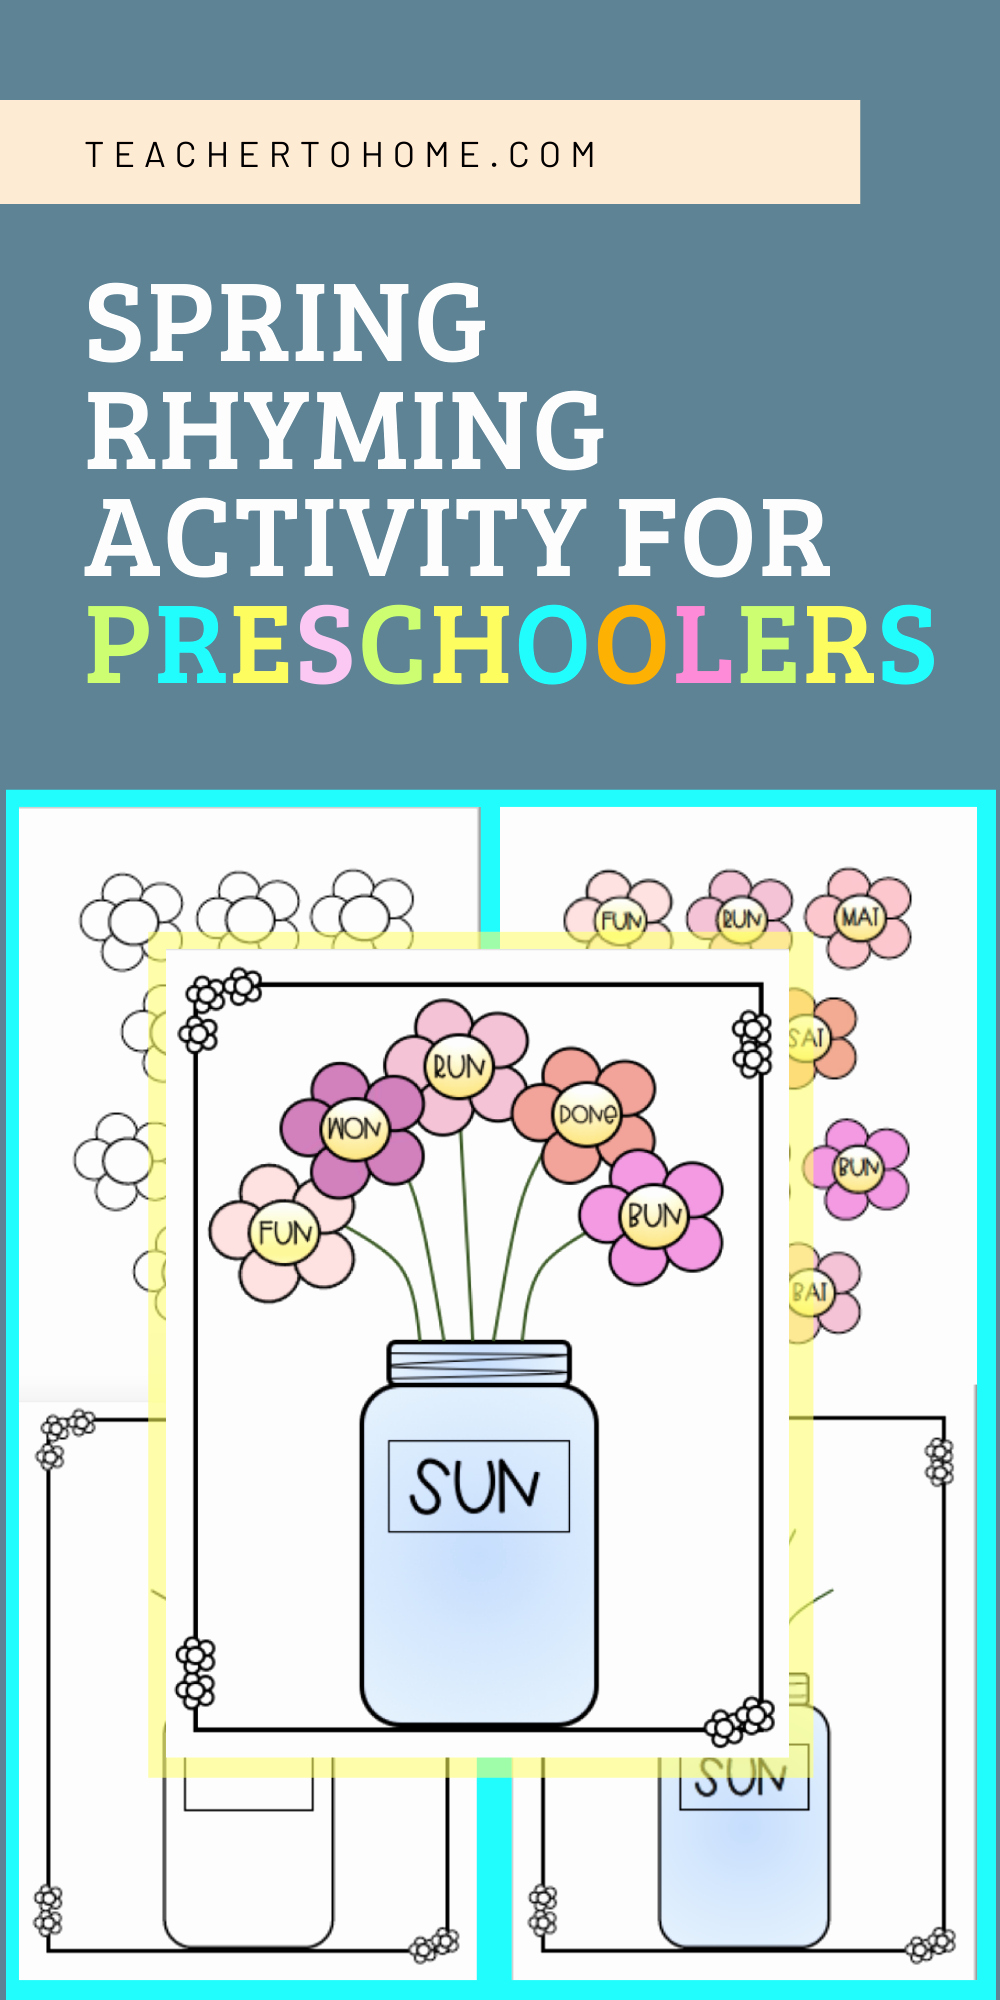 Rhyming Worksheets for Preschoolers Inspirational Rhyming Activities for Preschoolers at Home In 2020